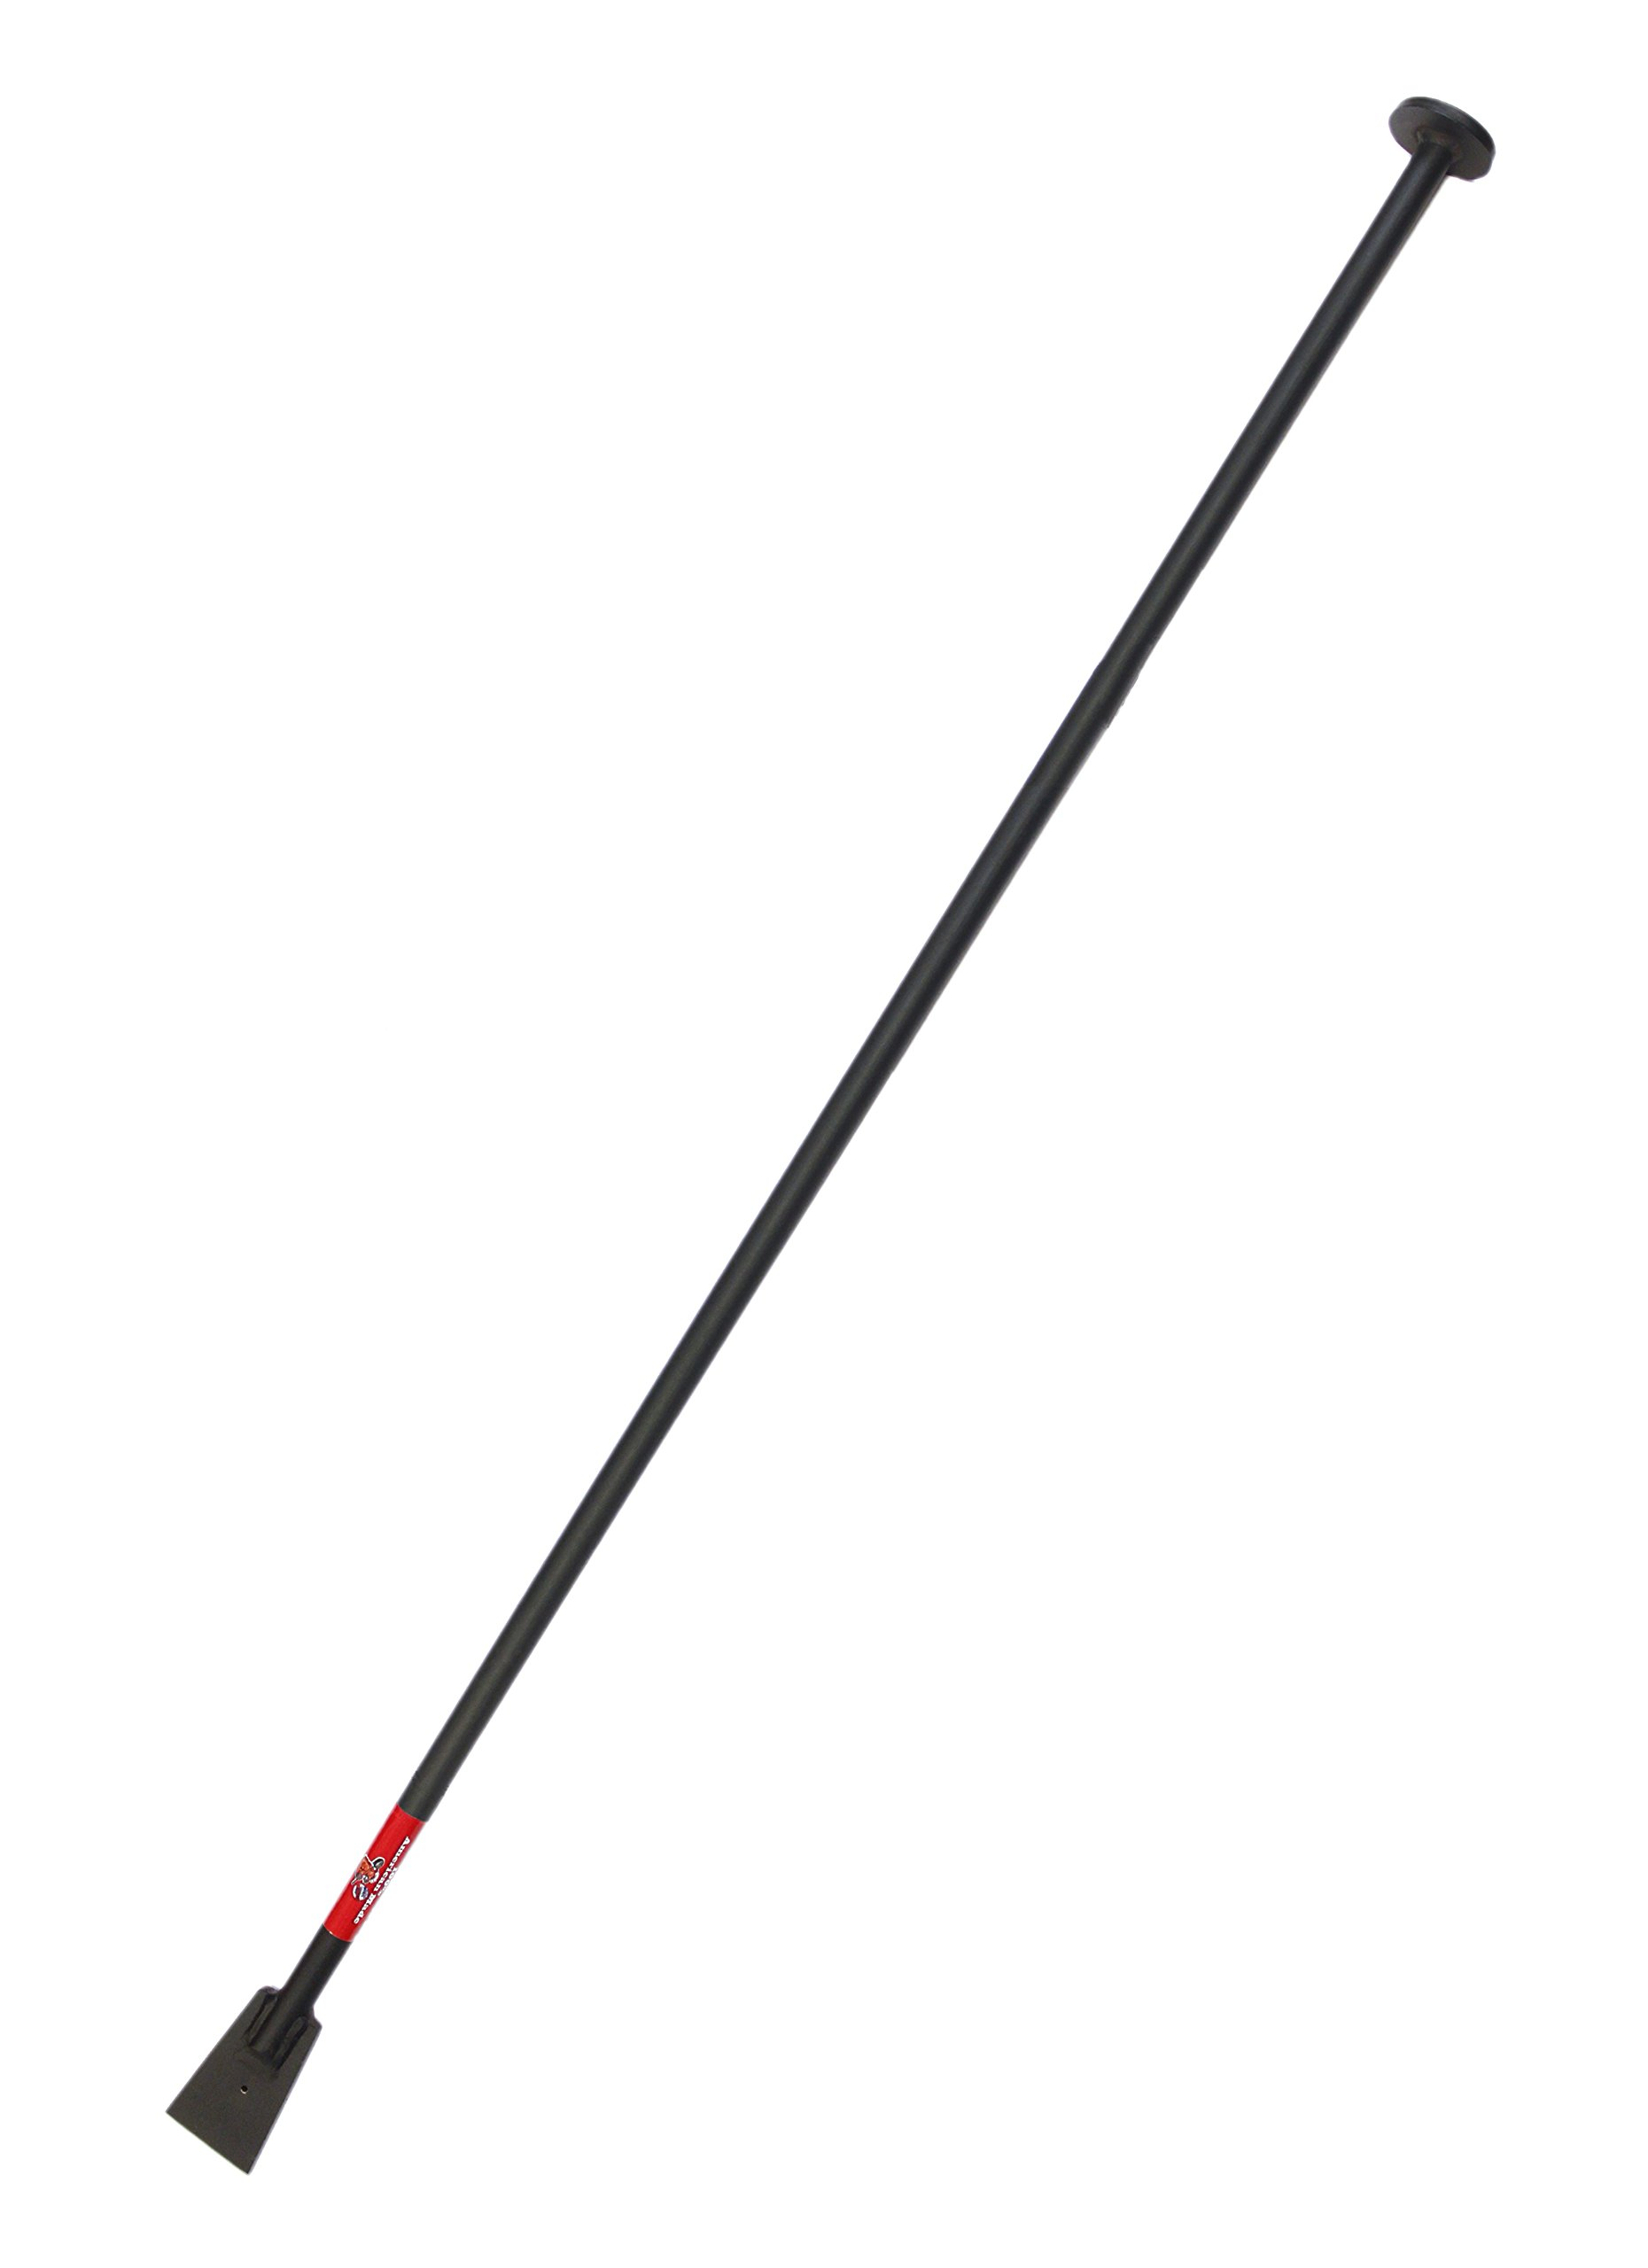 Bully Tools 92539 Steel Tamping and Digging Bar, 68-Inch by Bully Tools (Image #1)